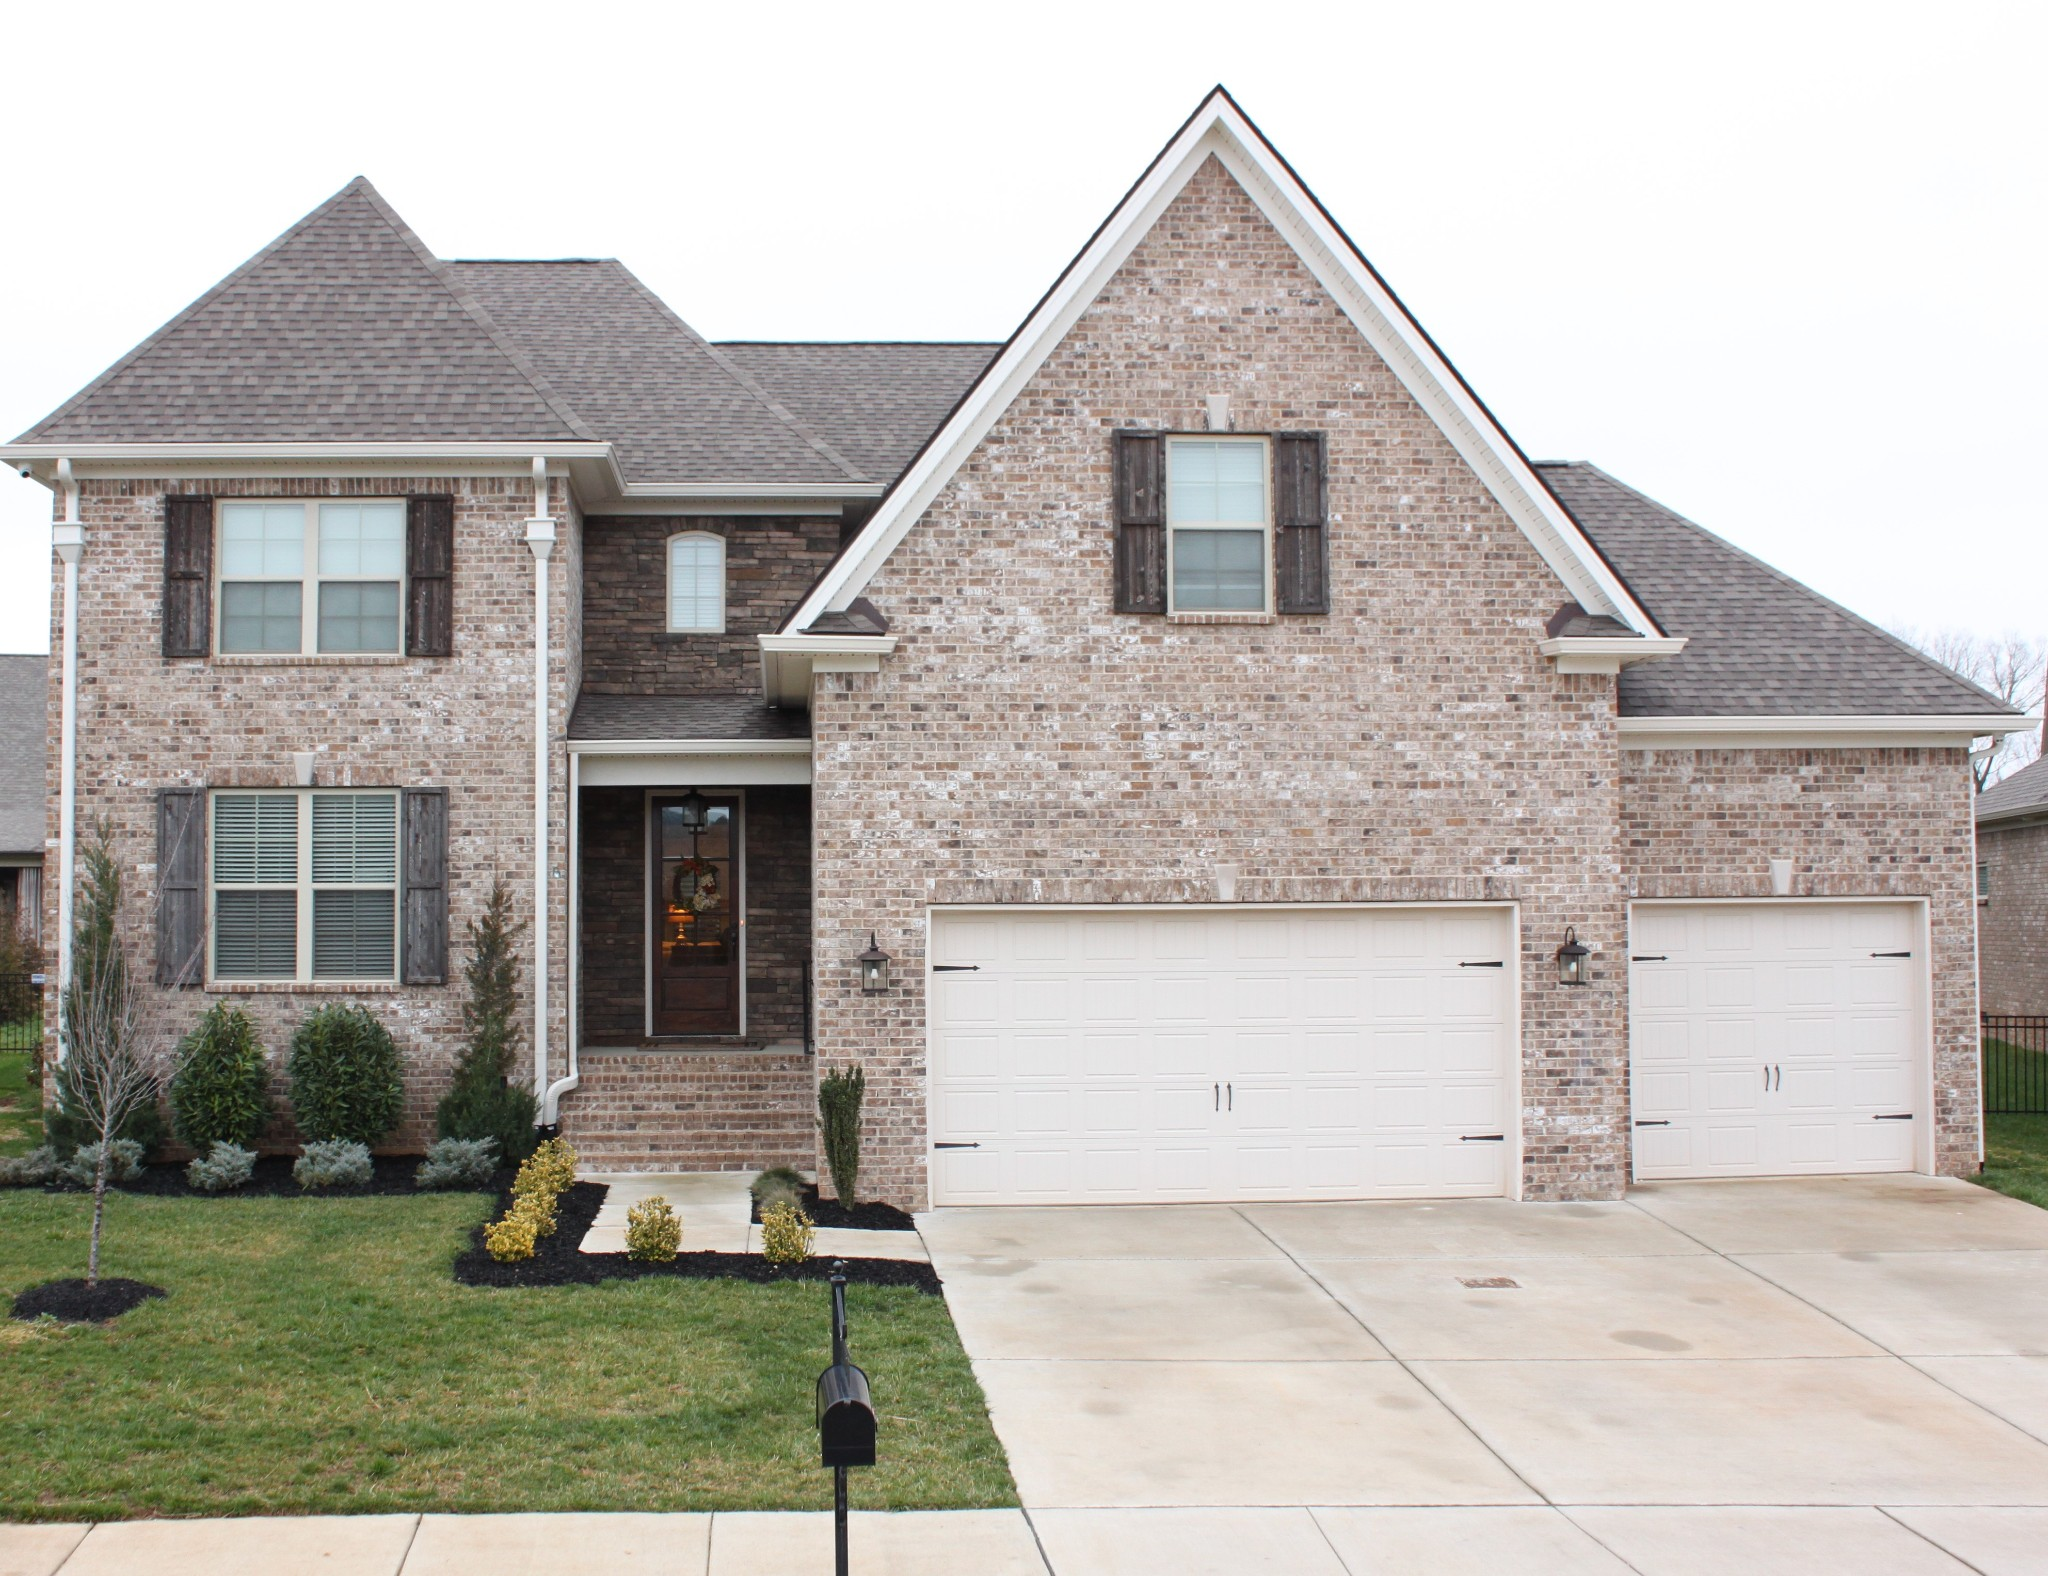 3017 Grunion Ln, Spring Hill in Williamson County, T County, TN 37174 Home for Sale